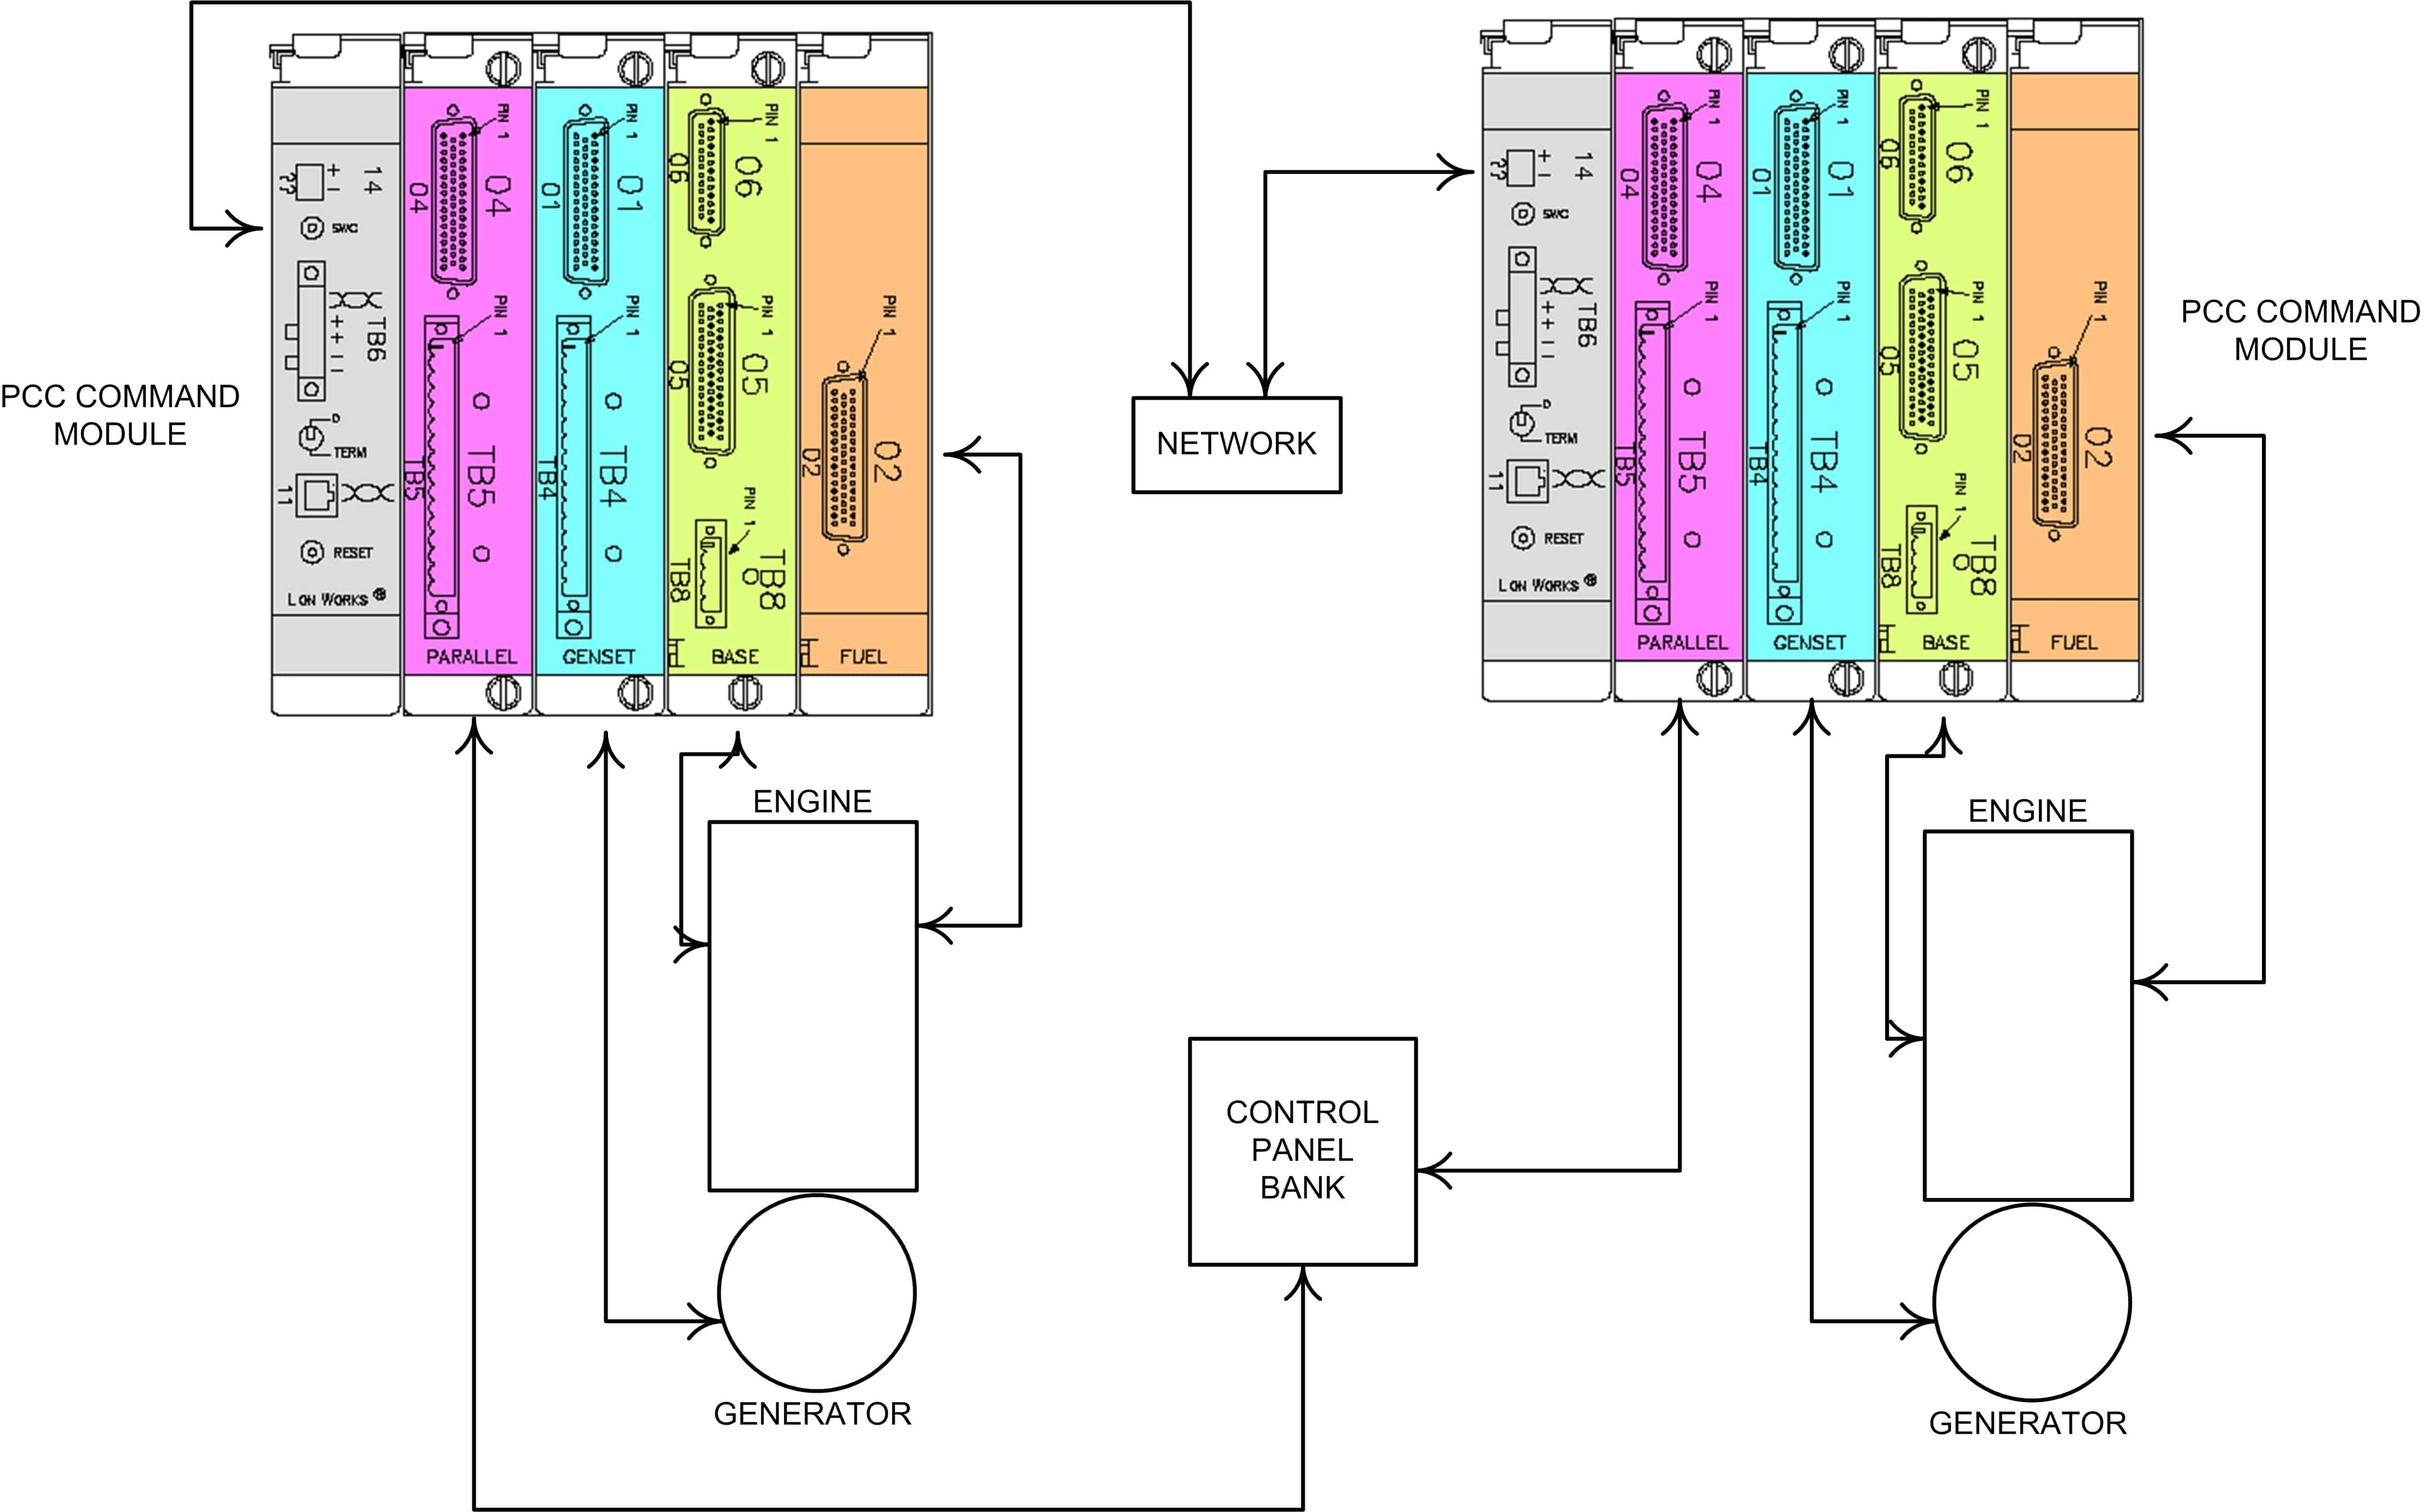 Figure 4 min.aspx?width=1294&height=803 diesel engine generator governors katolight generator wiring diagram at mifinder.co